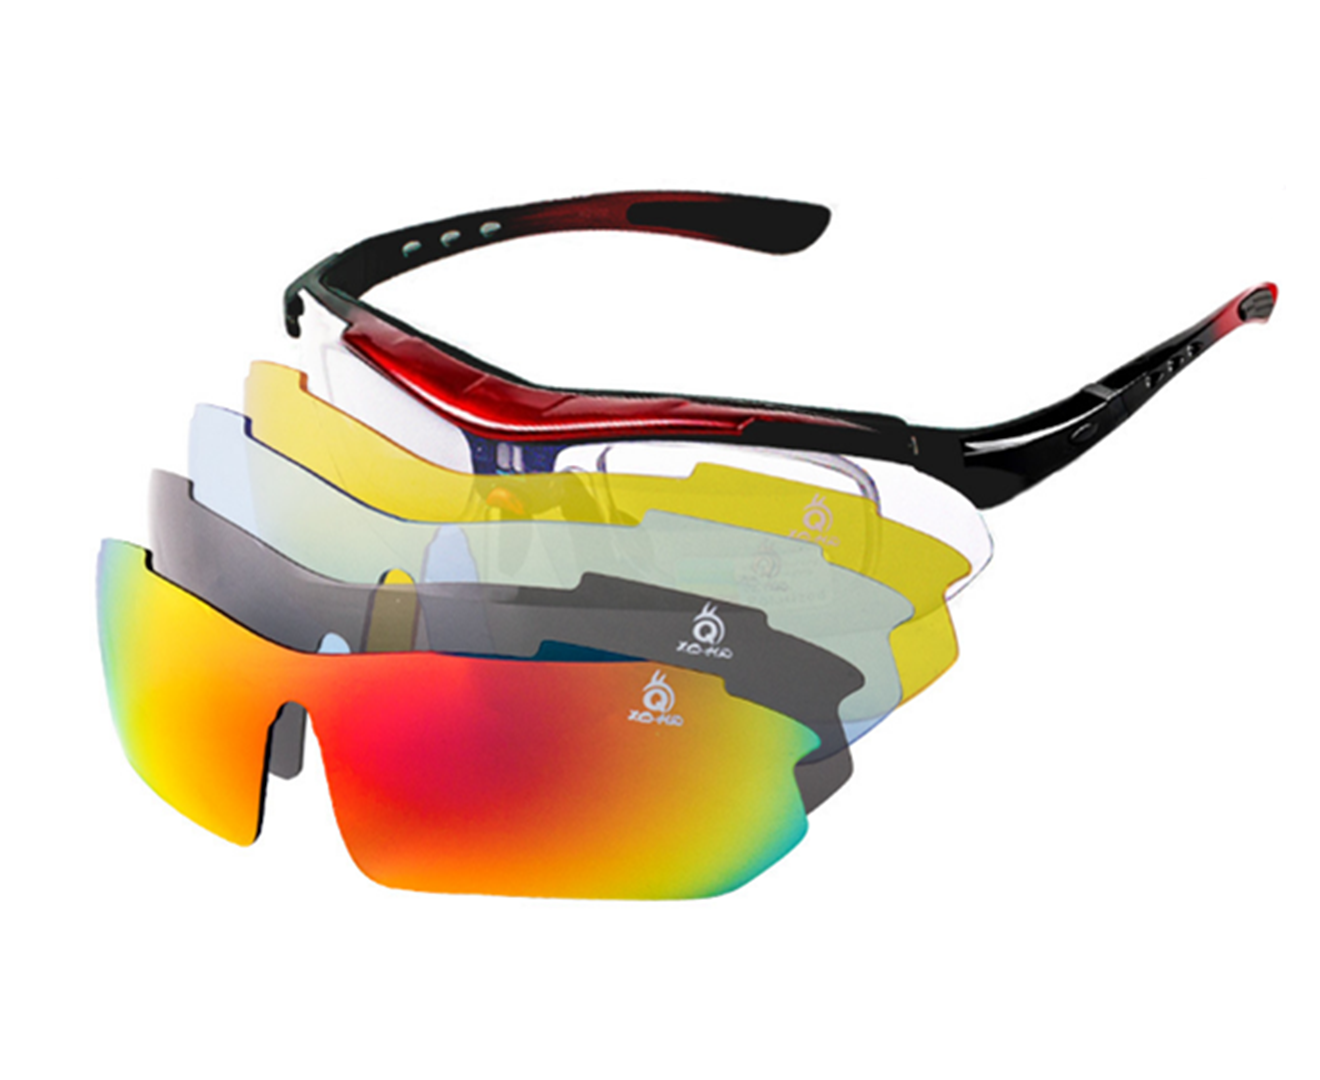 2-in-3 Basketball Glasses Optical Frame Detachable Legs /& Strap Sports Goggles Protective grey